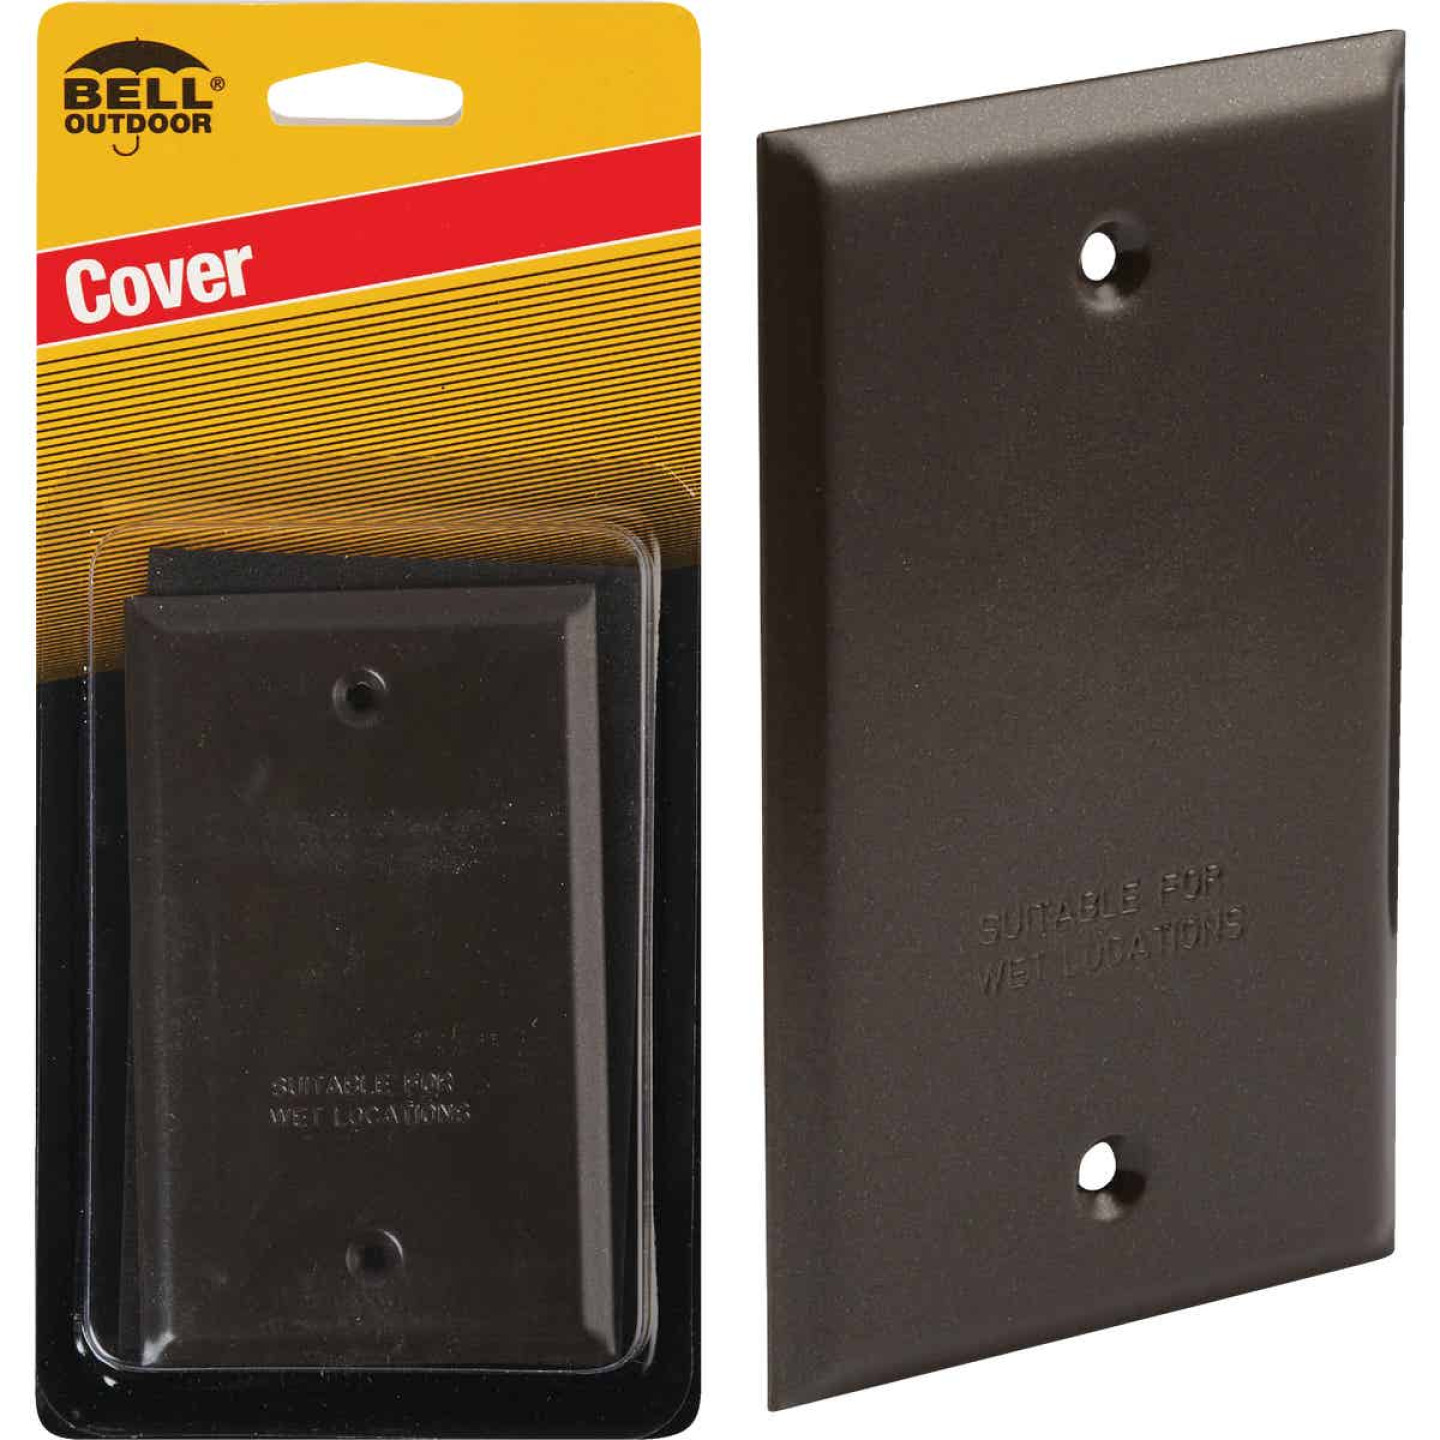 Bell Single Gang Rectangular Die-Cast Metal Bronze Blank Outdoor Box Cover Image 1